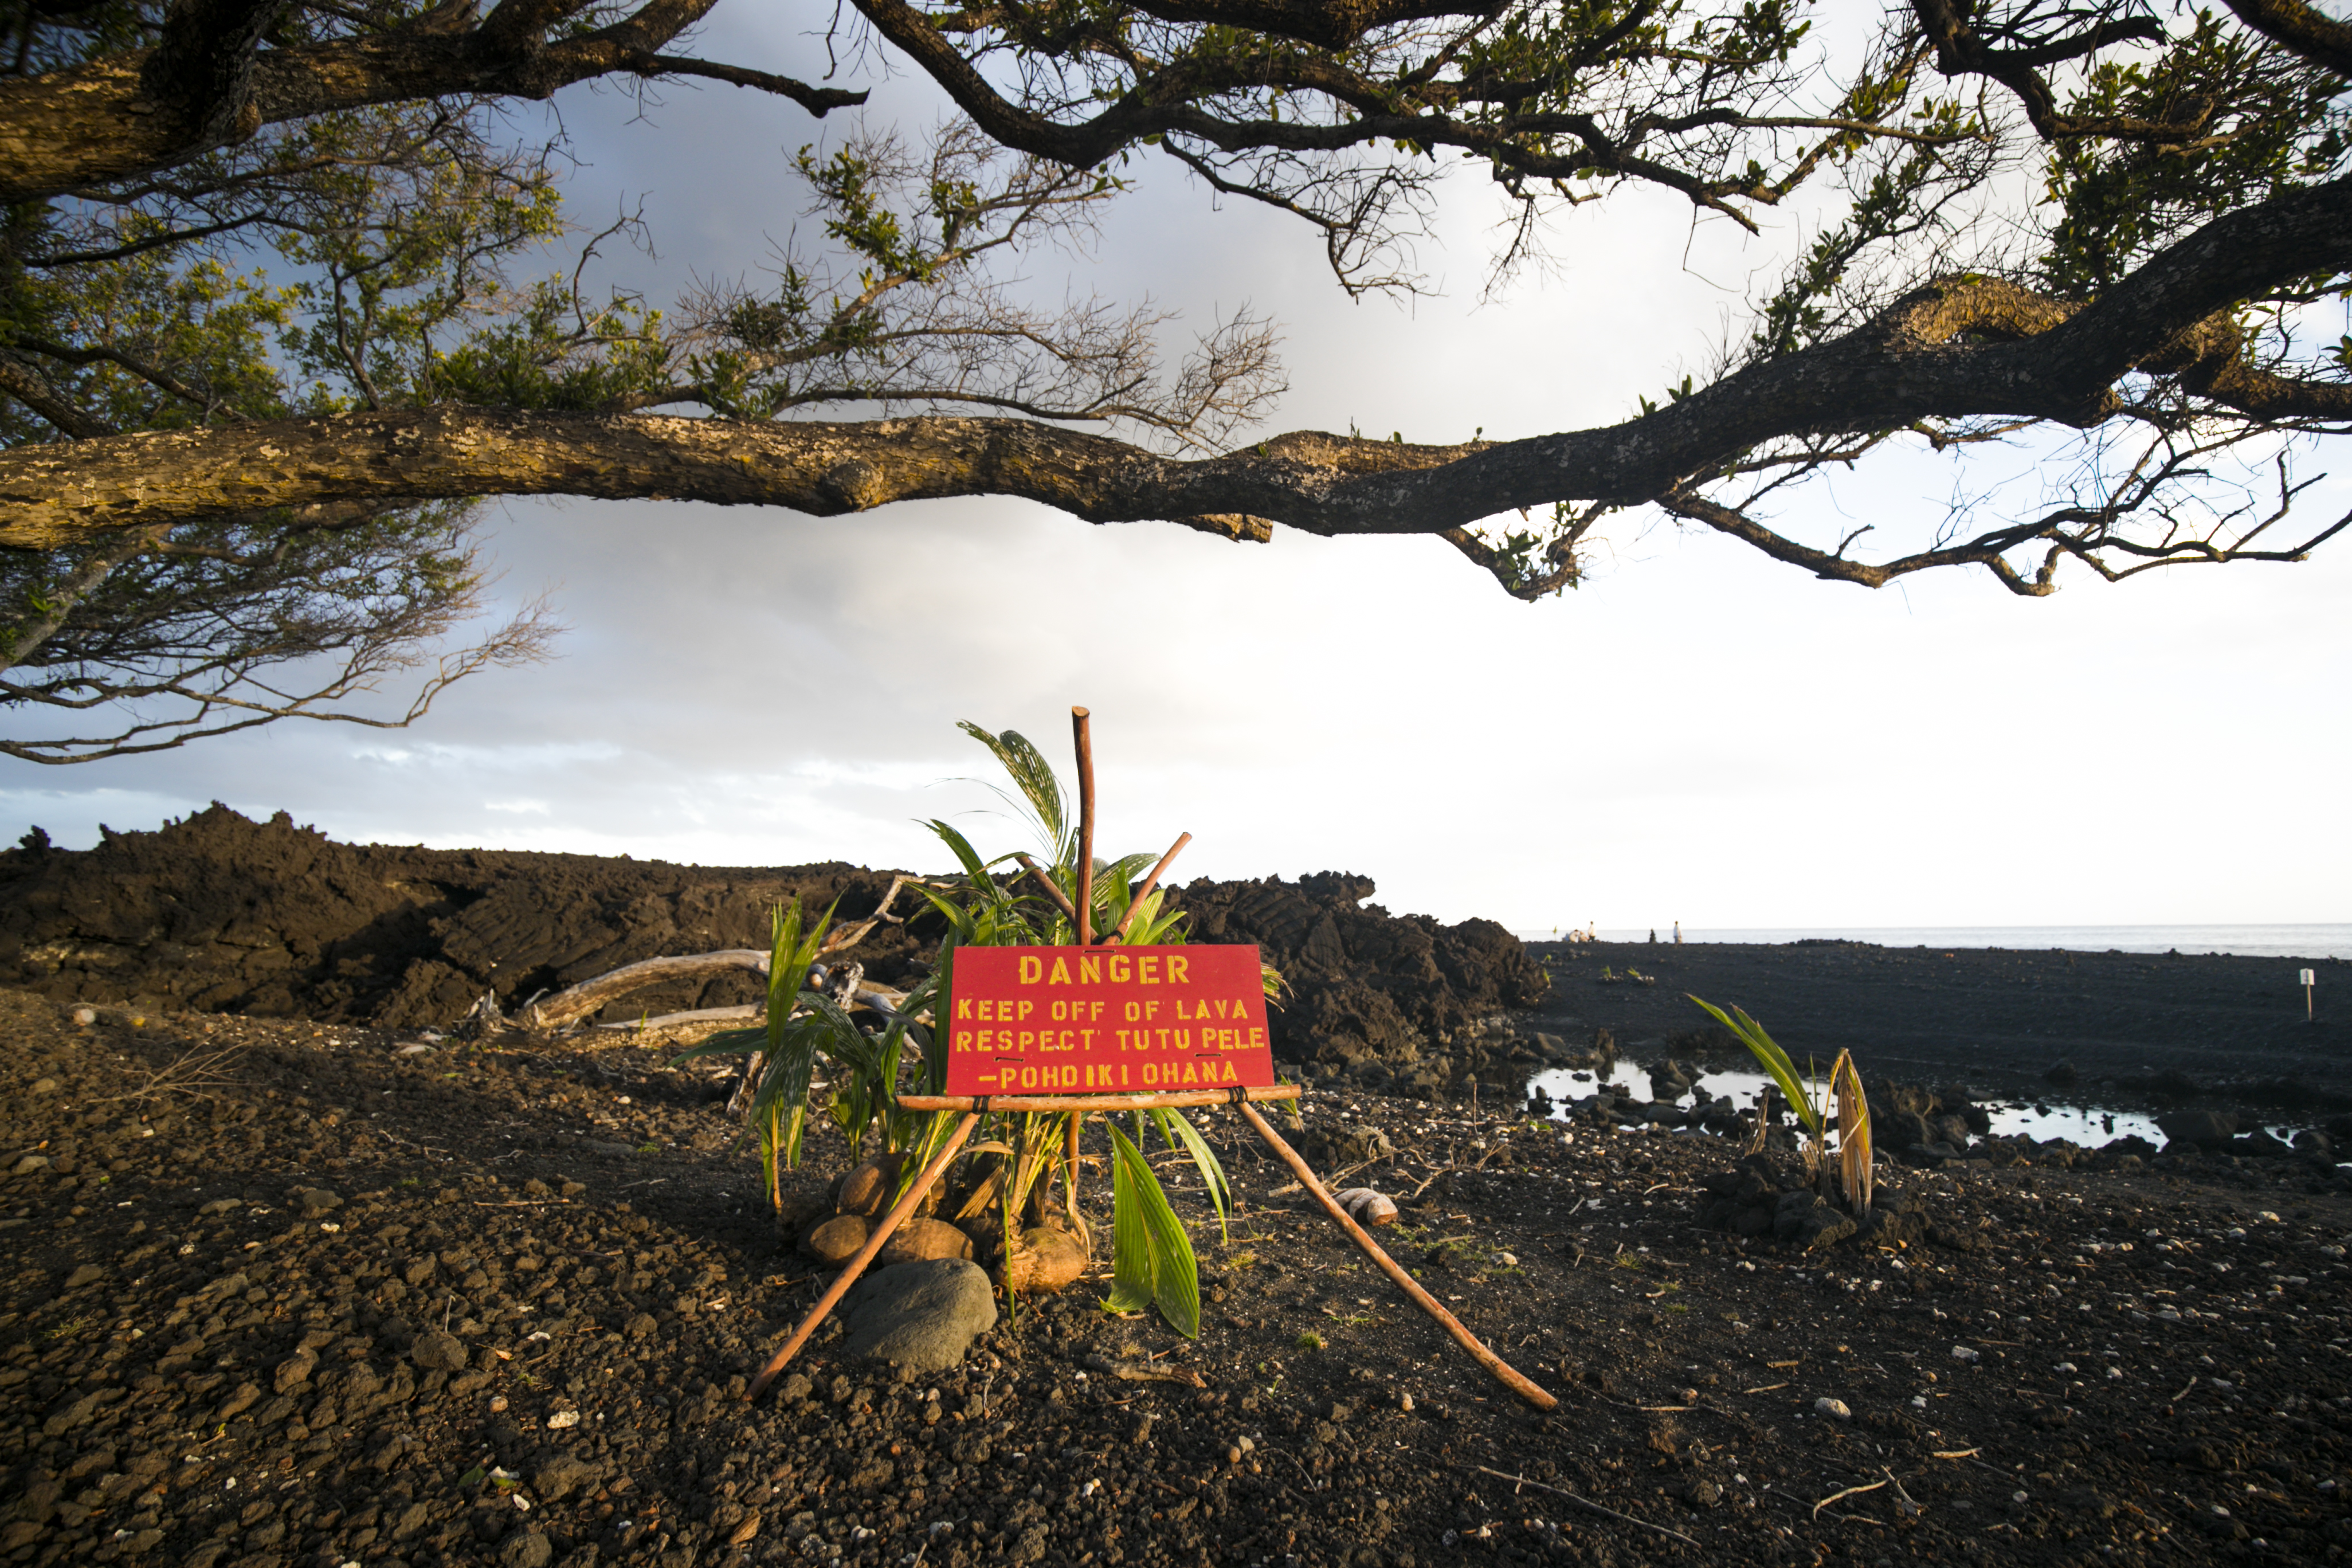 New lava beach at Pohoiki